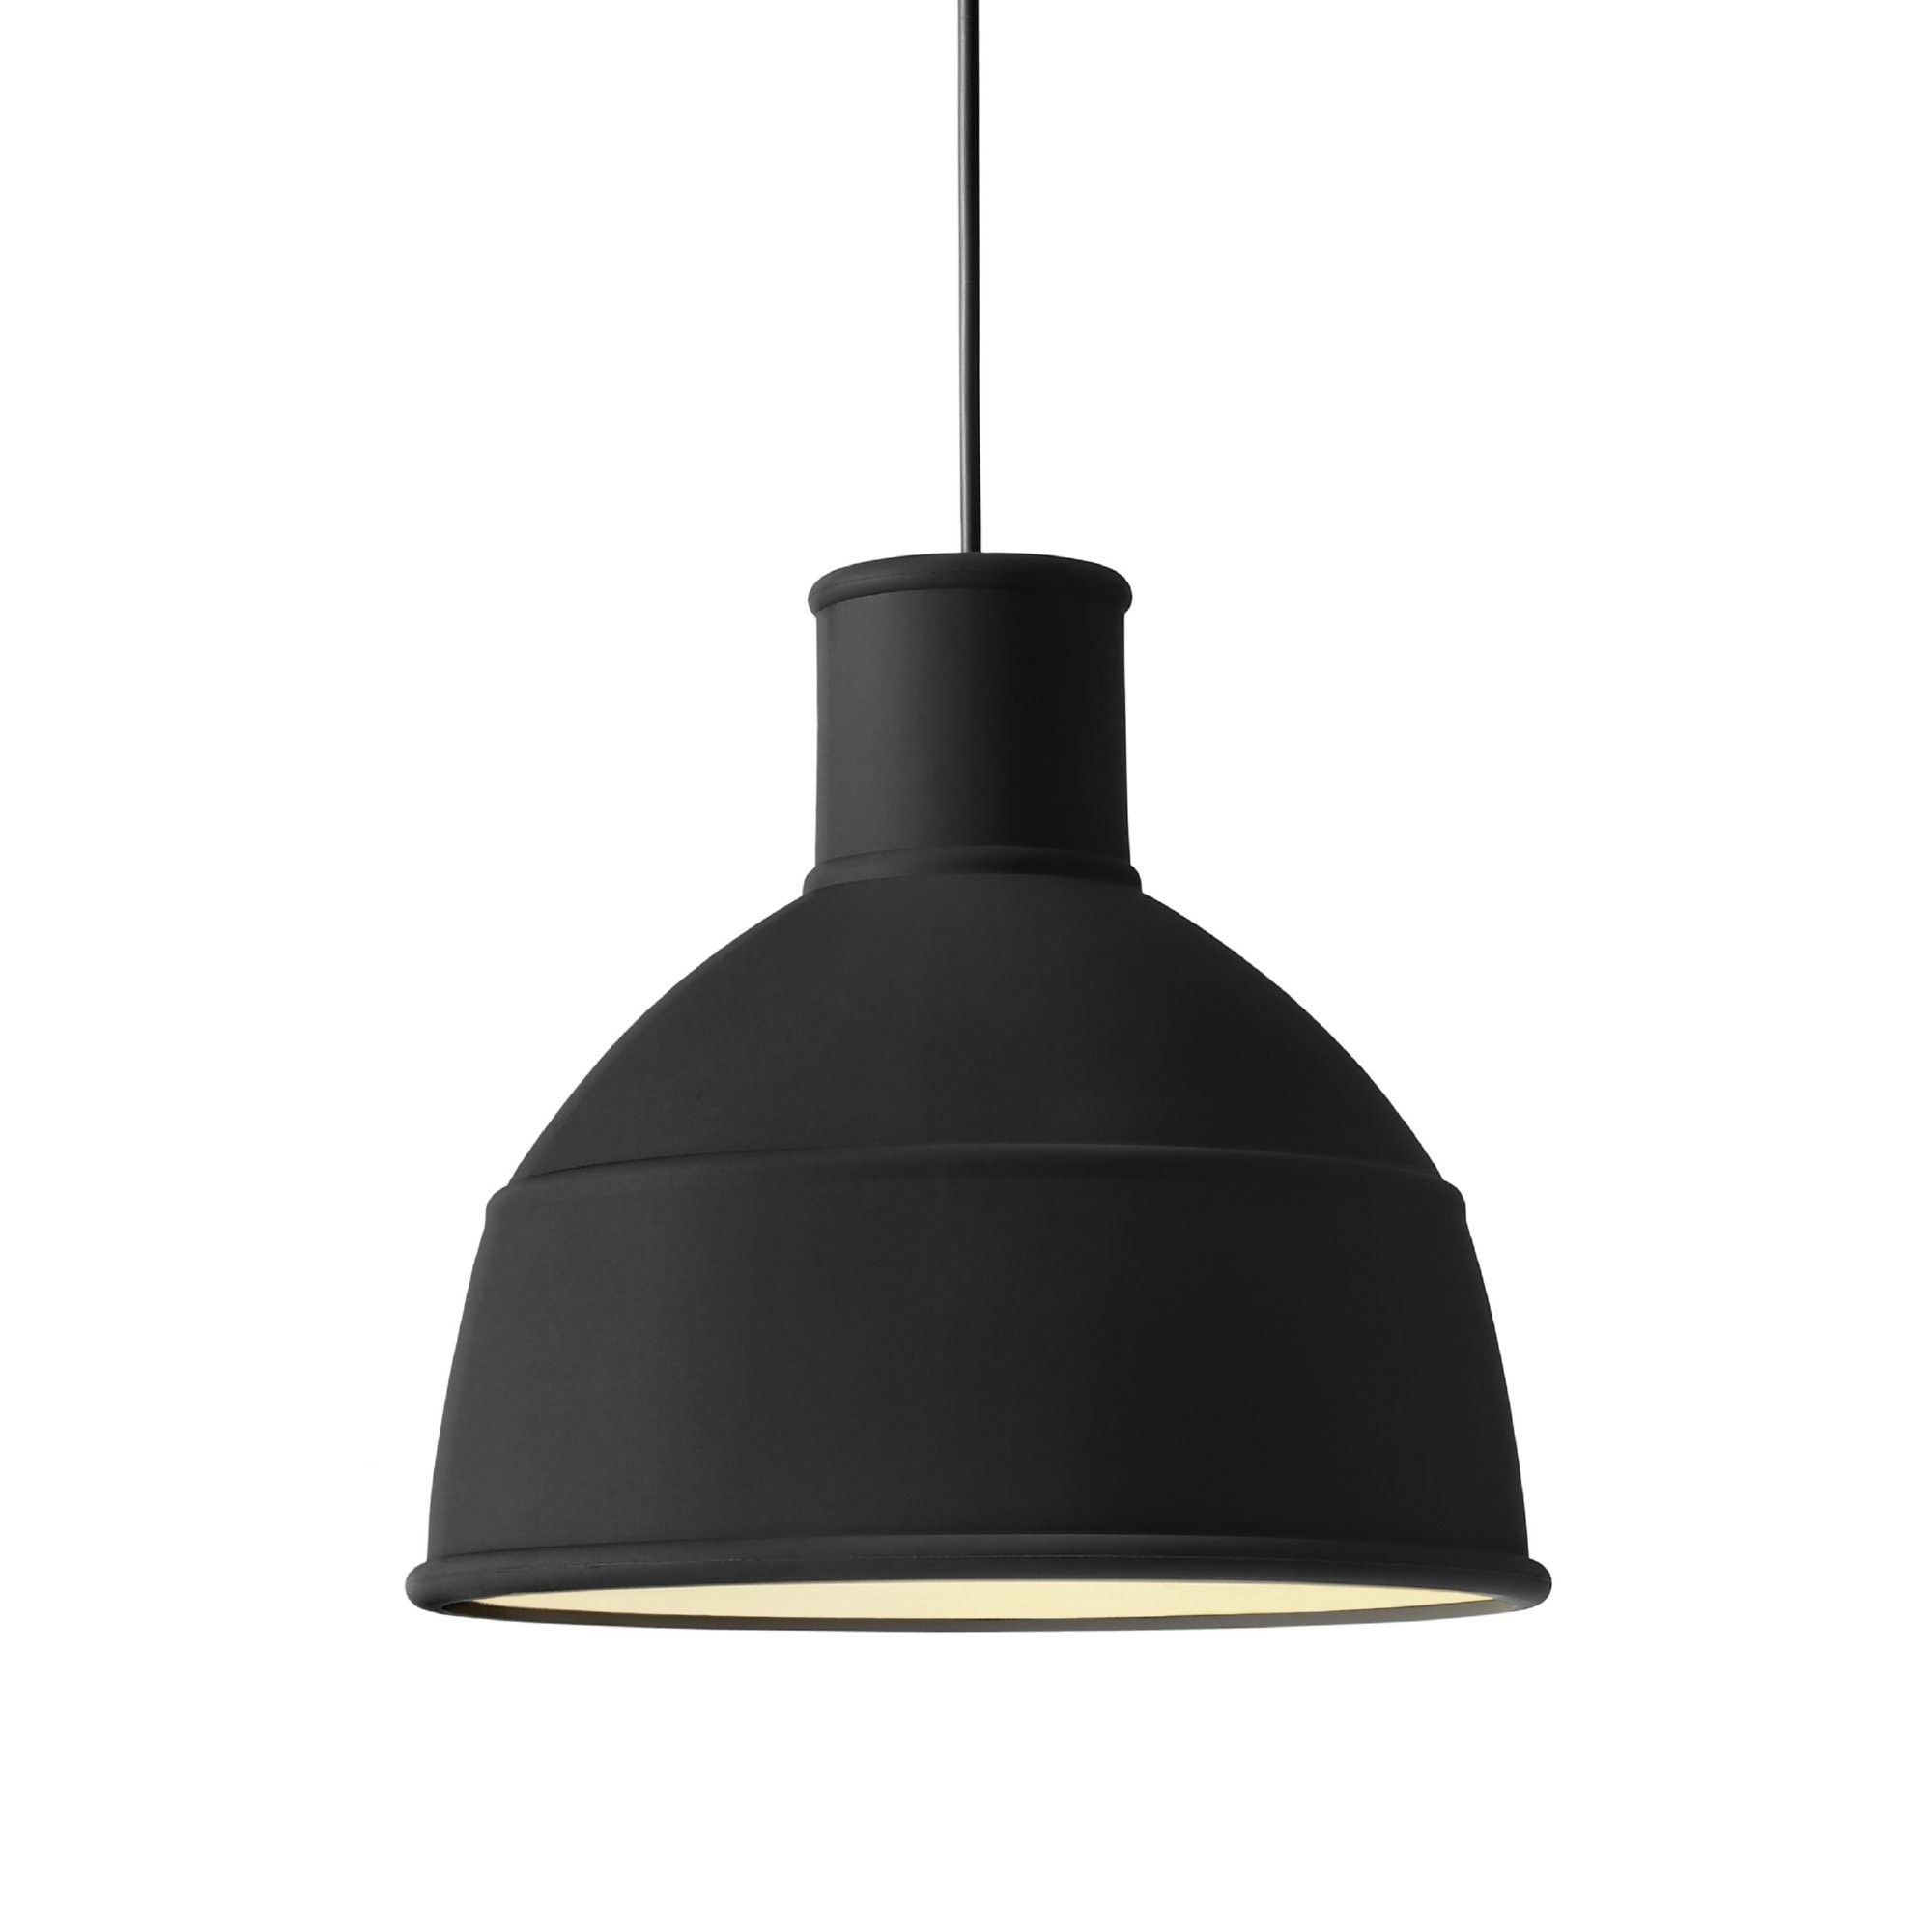 Pin by Lucy Tuck on Lighting   Pendant light, Unfold pendant